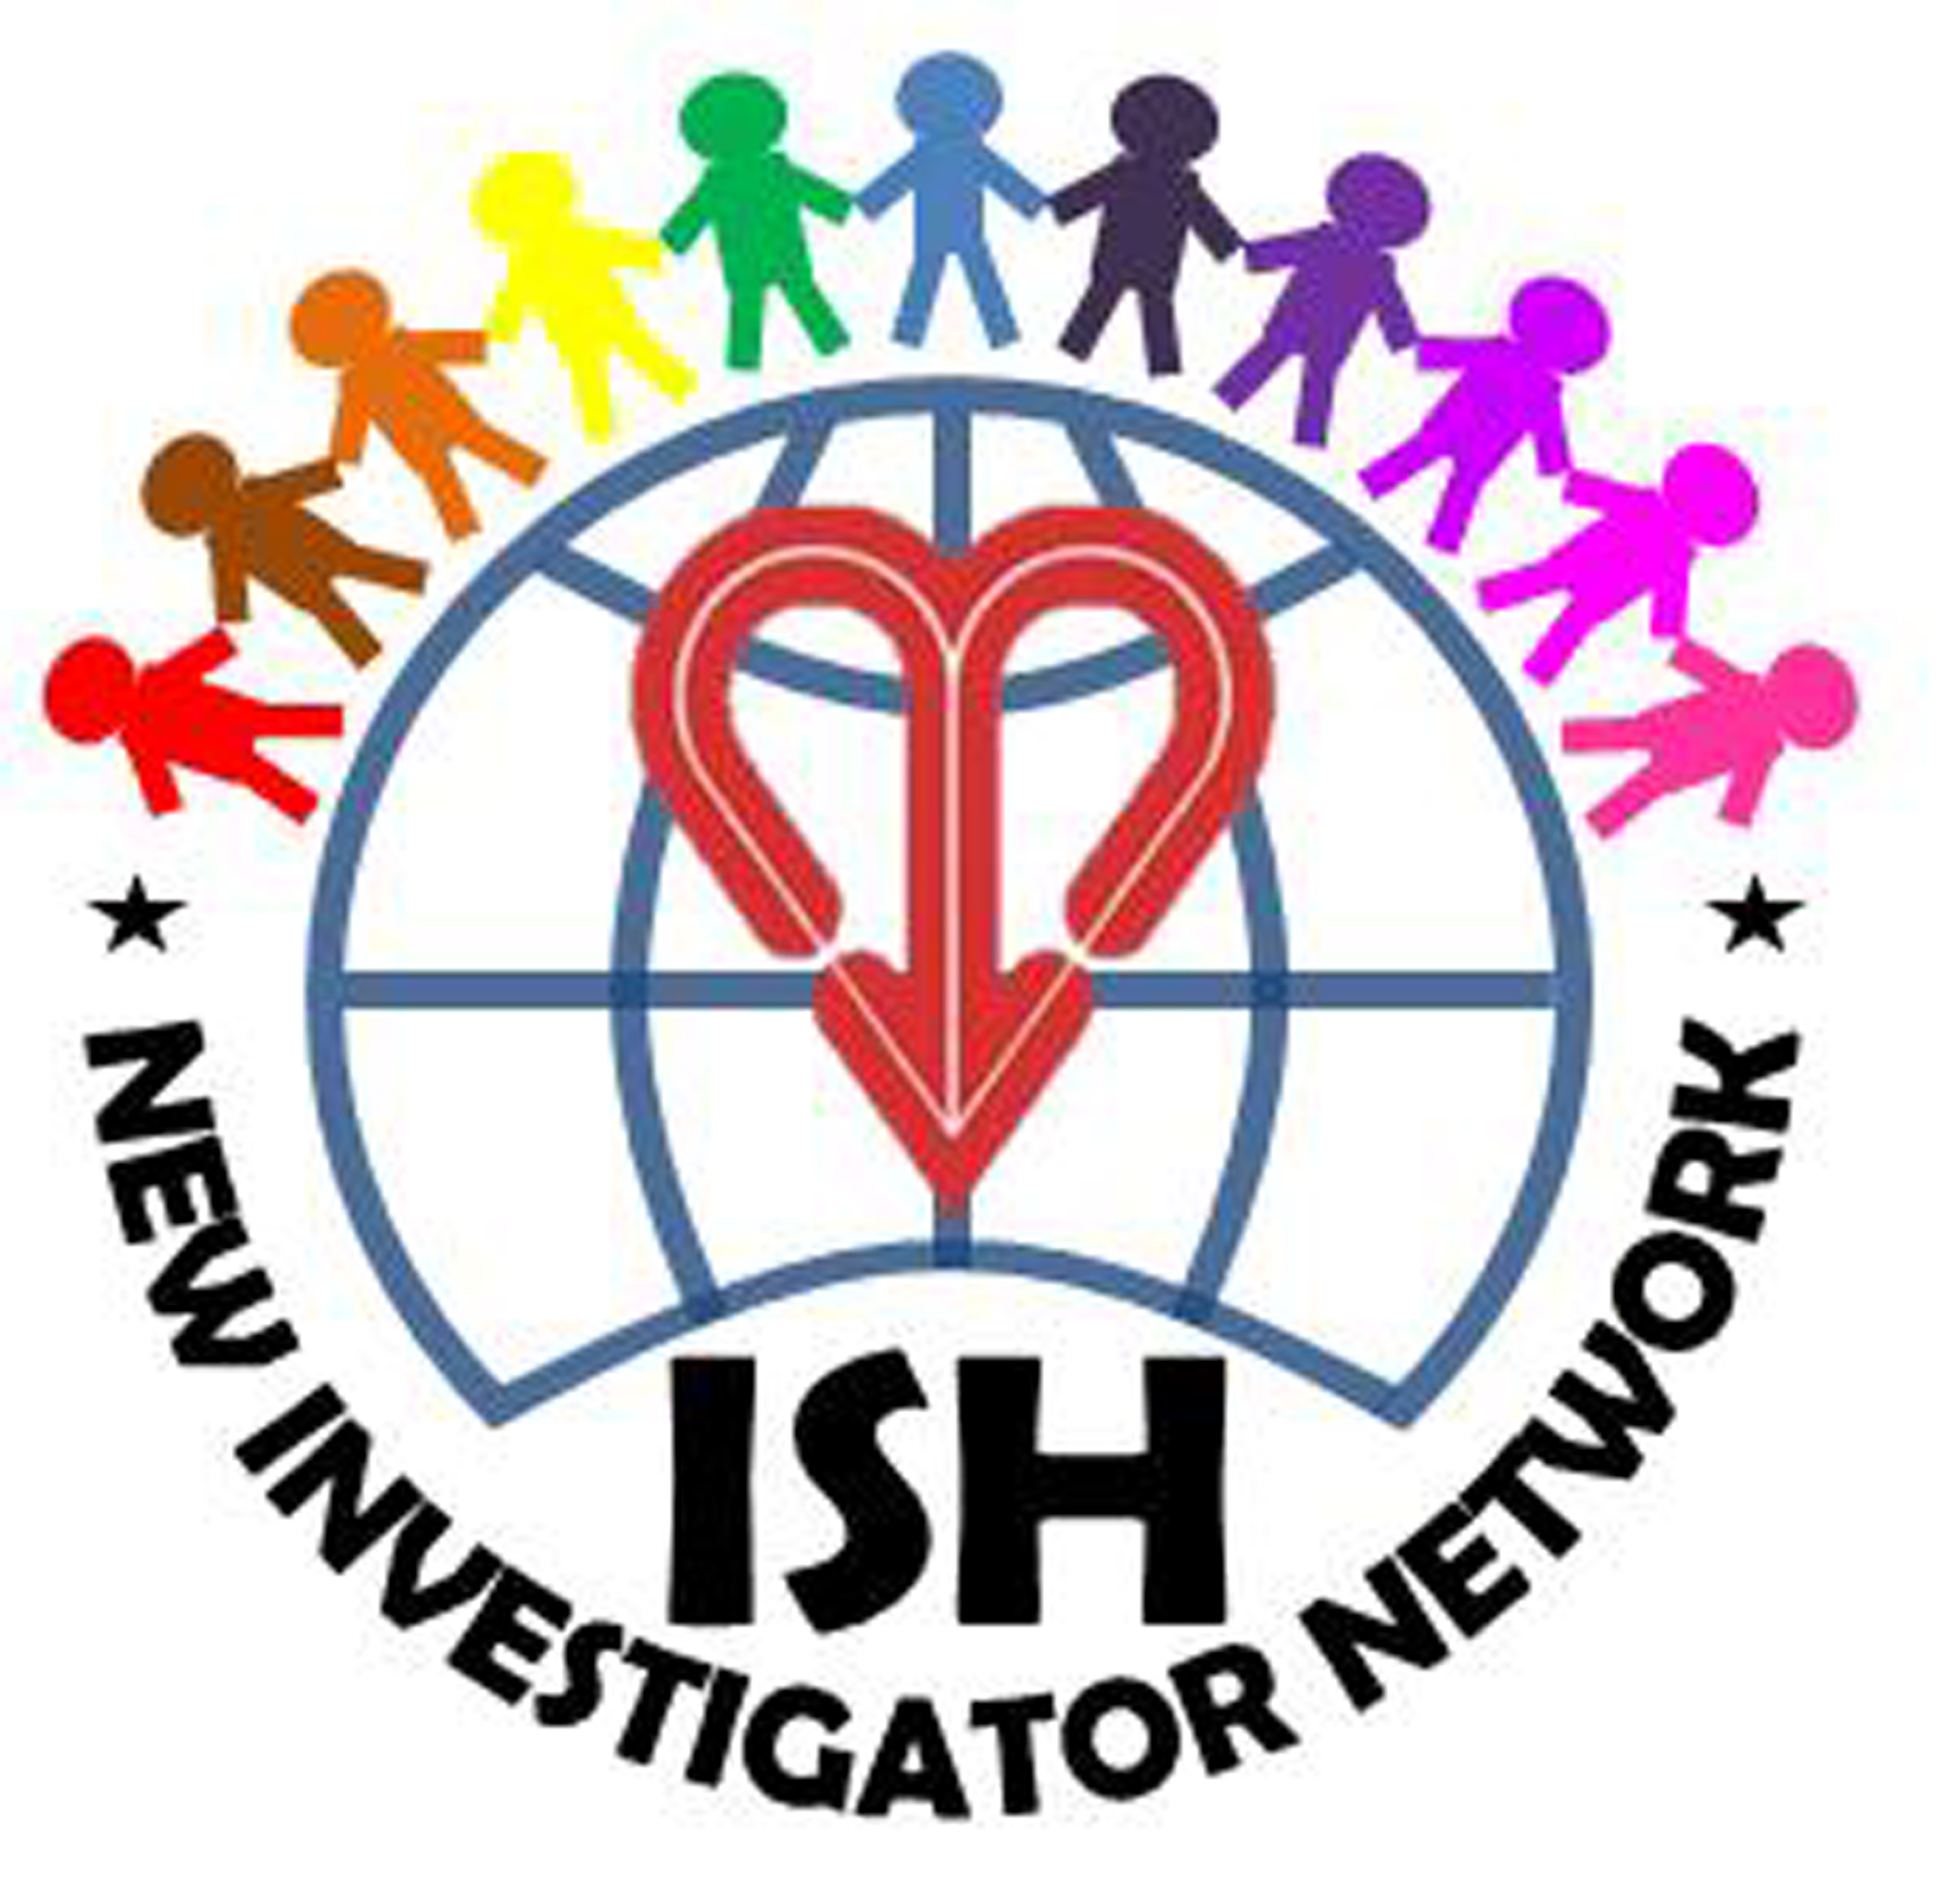 New Investigator Committee logo